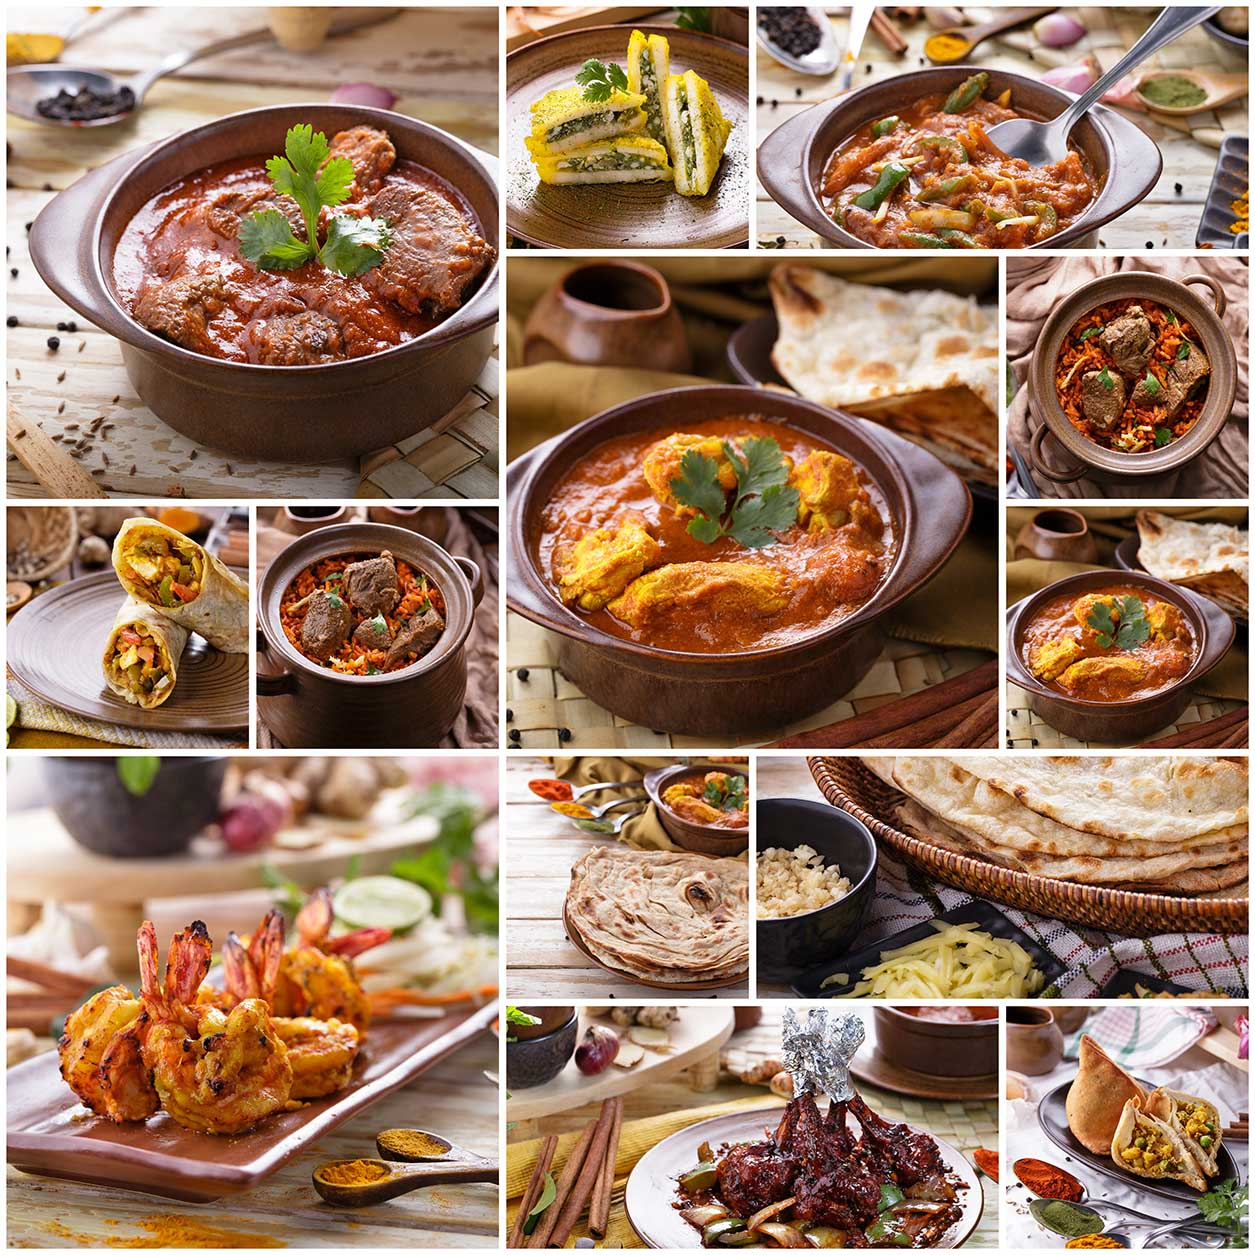 Cuisine India New Taste Of India Your Ultimate Destination Of Indian Cuisine